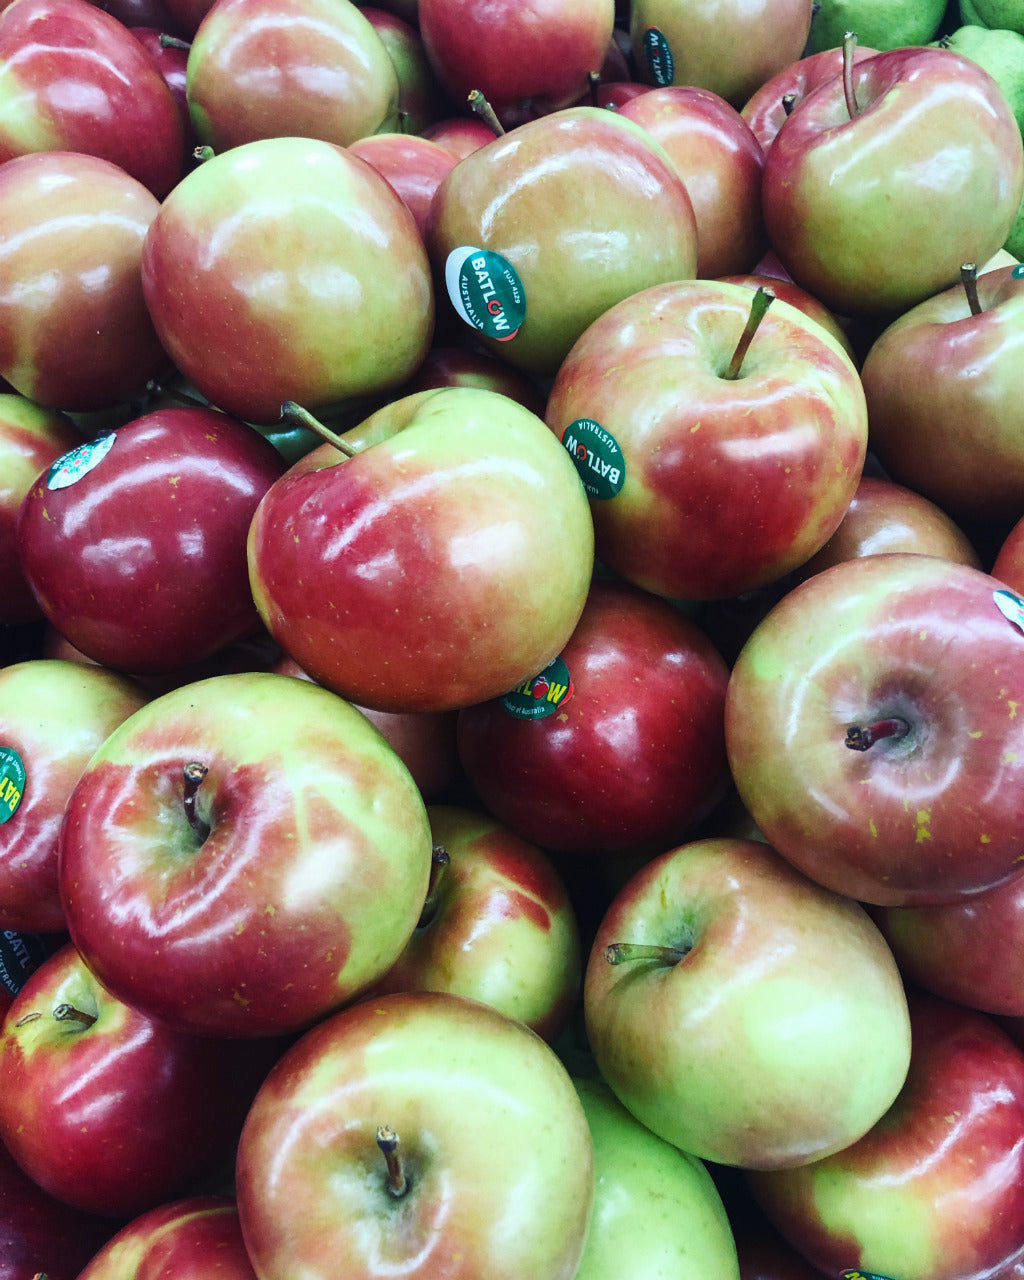 fuji apples pick of the week